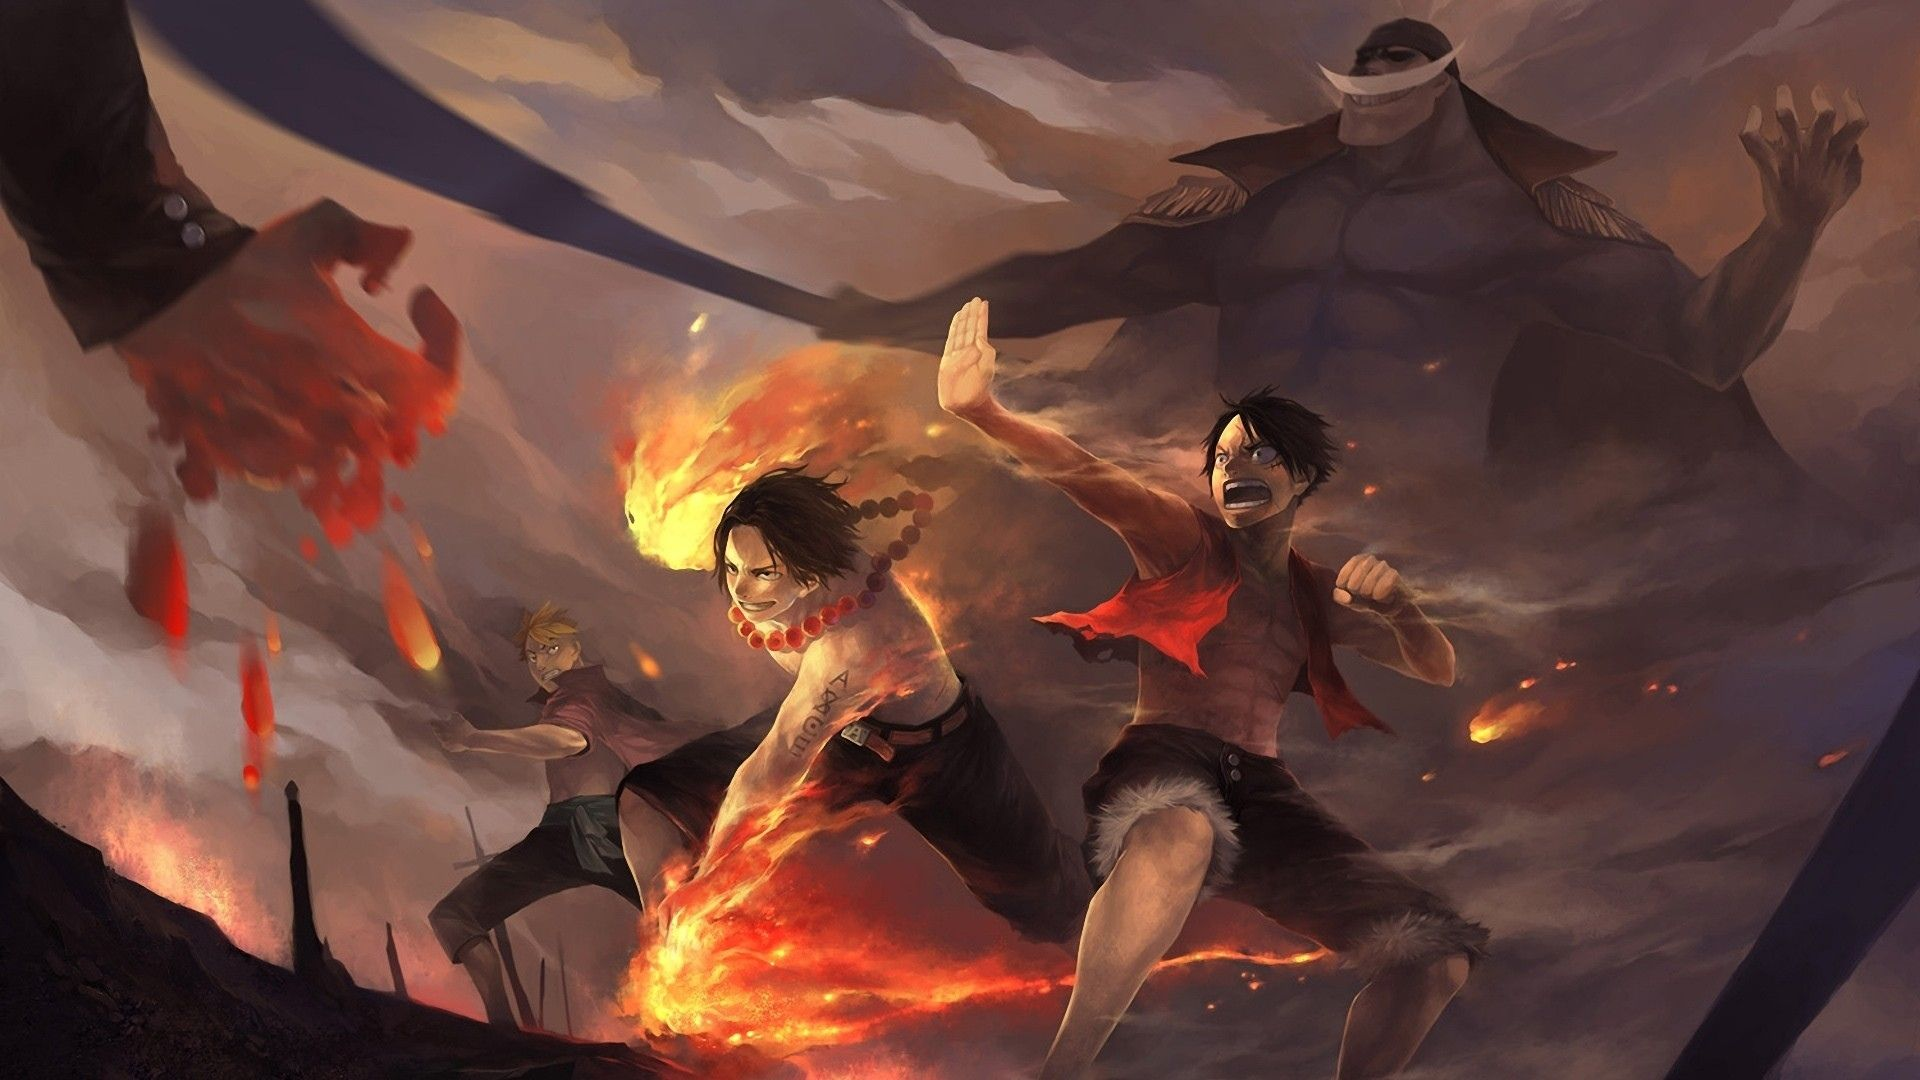 Anime One Piece Portgas D Ace Wallpaper One Piece Ace One Piece Anime Ace And Luffy